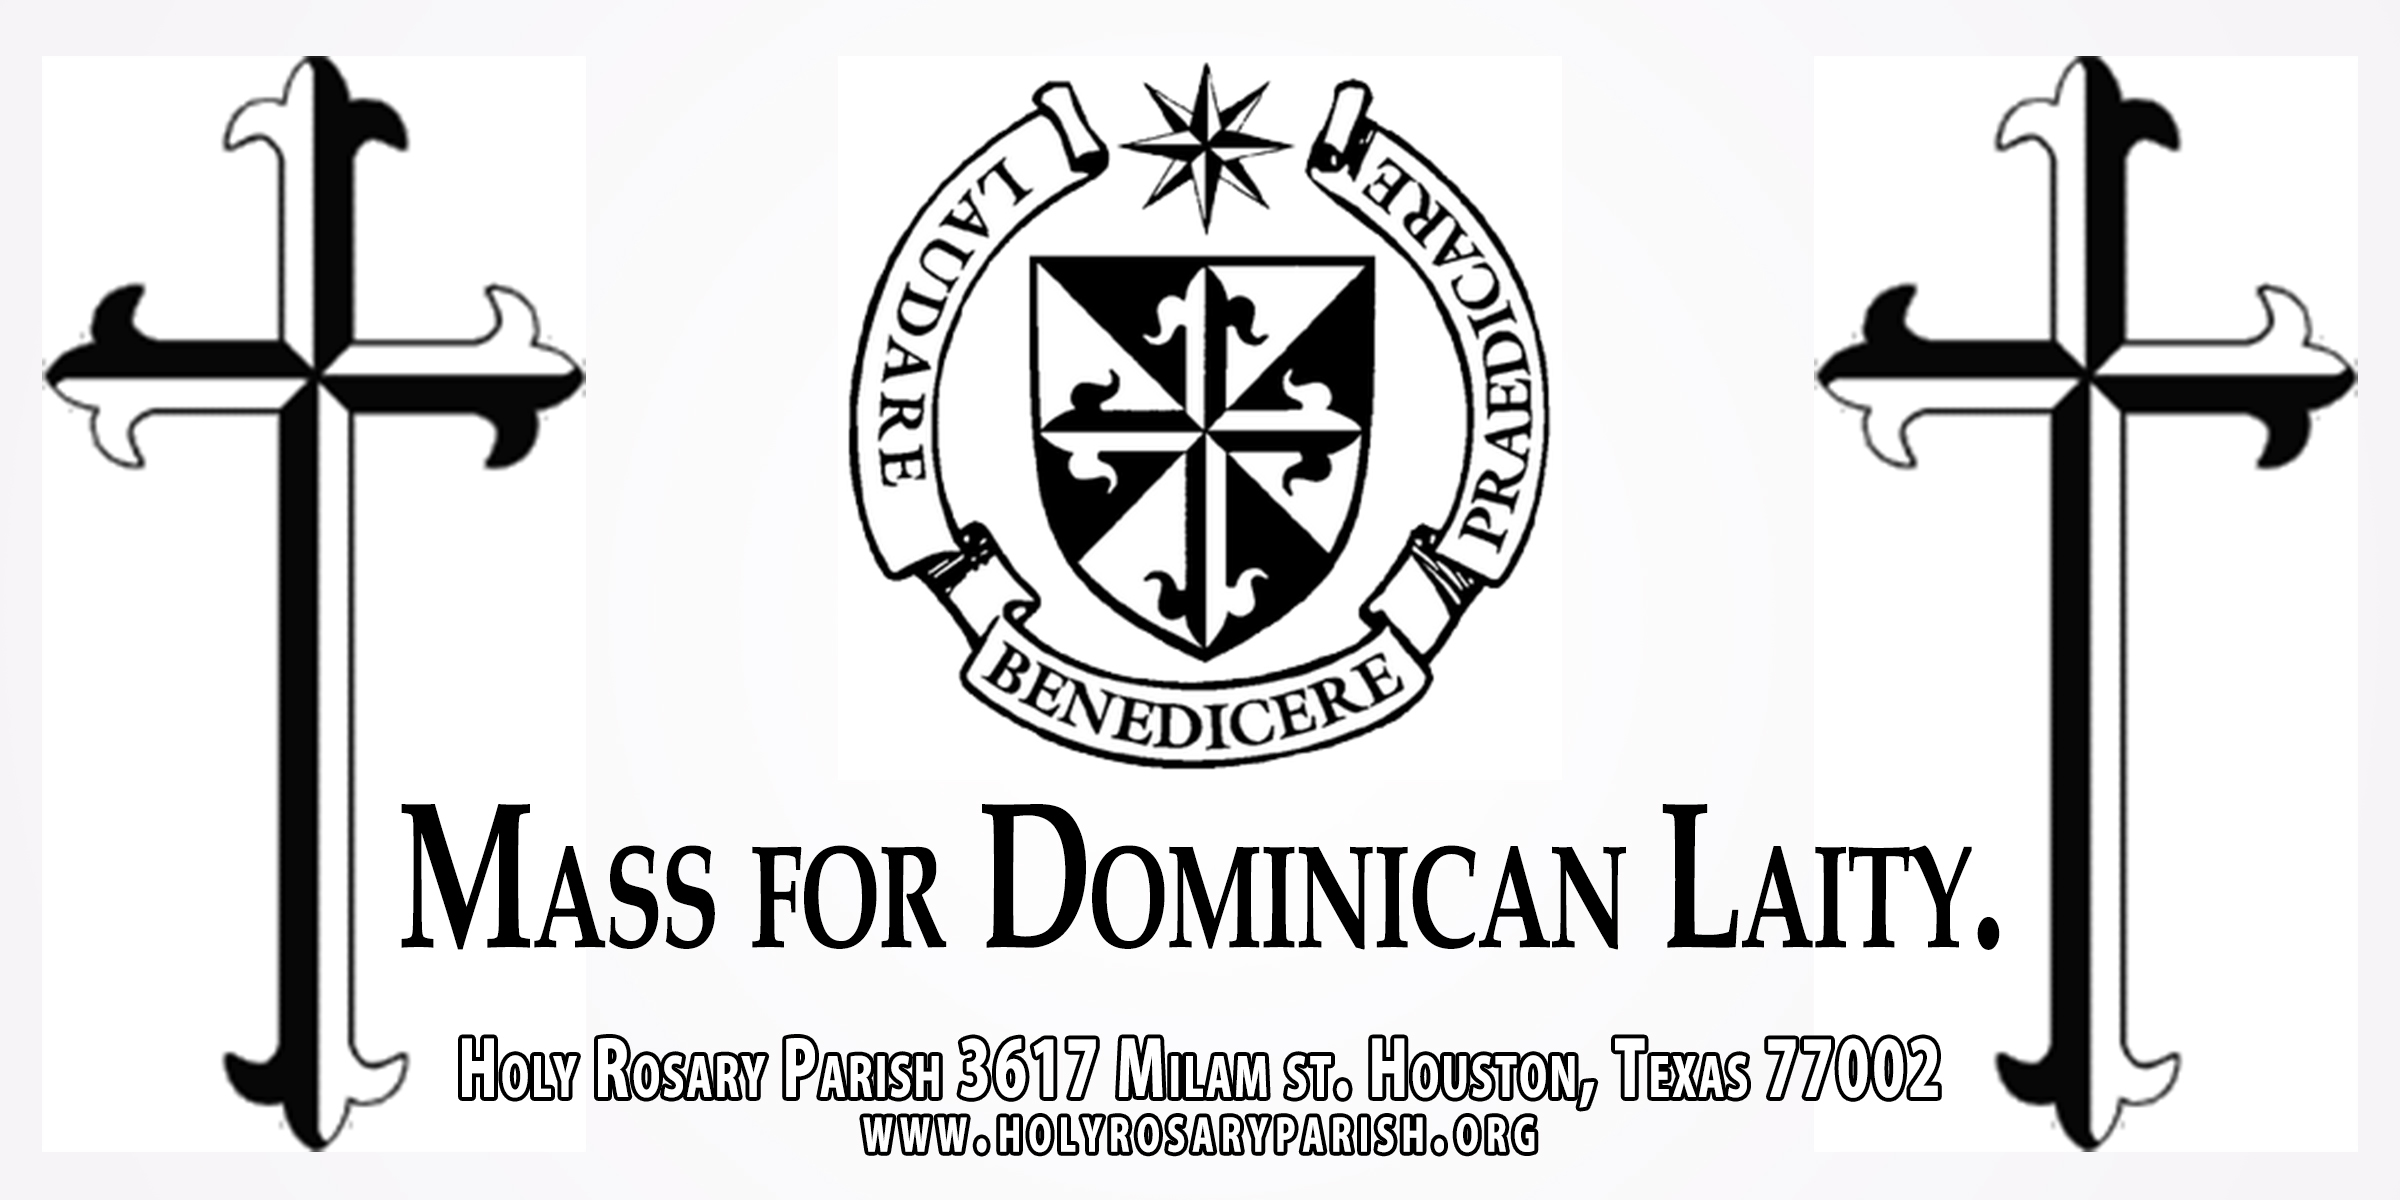 Mass for Dominican Laity Banner 1.jpg